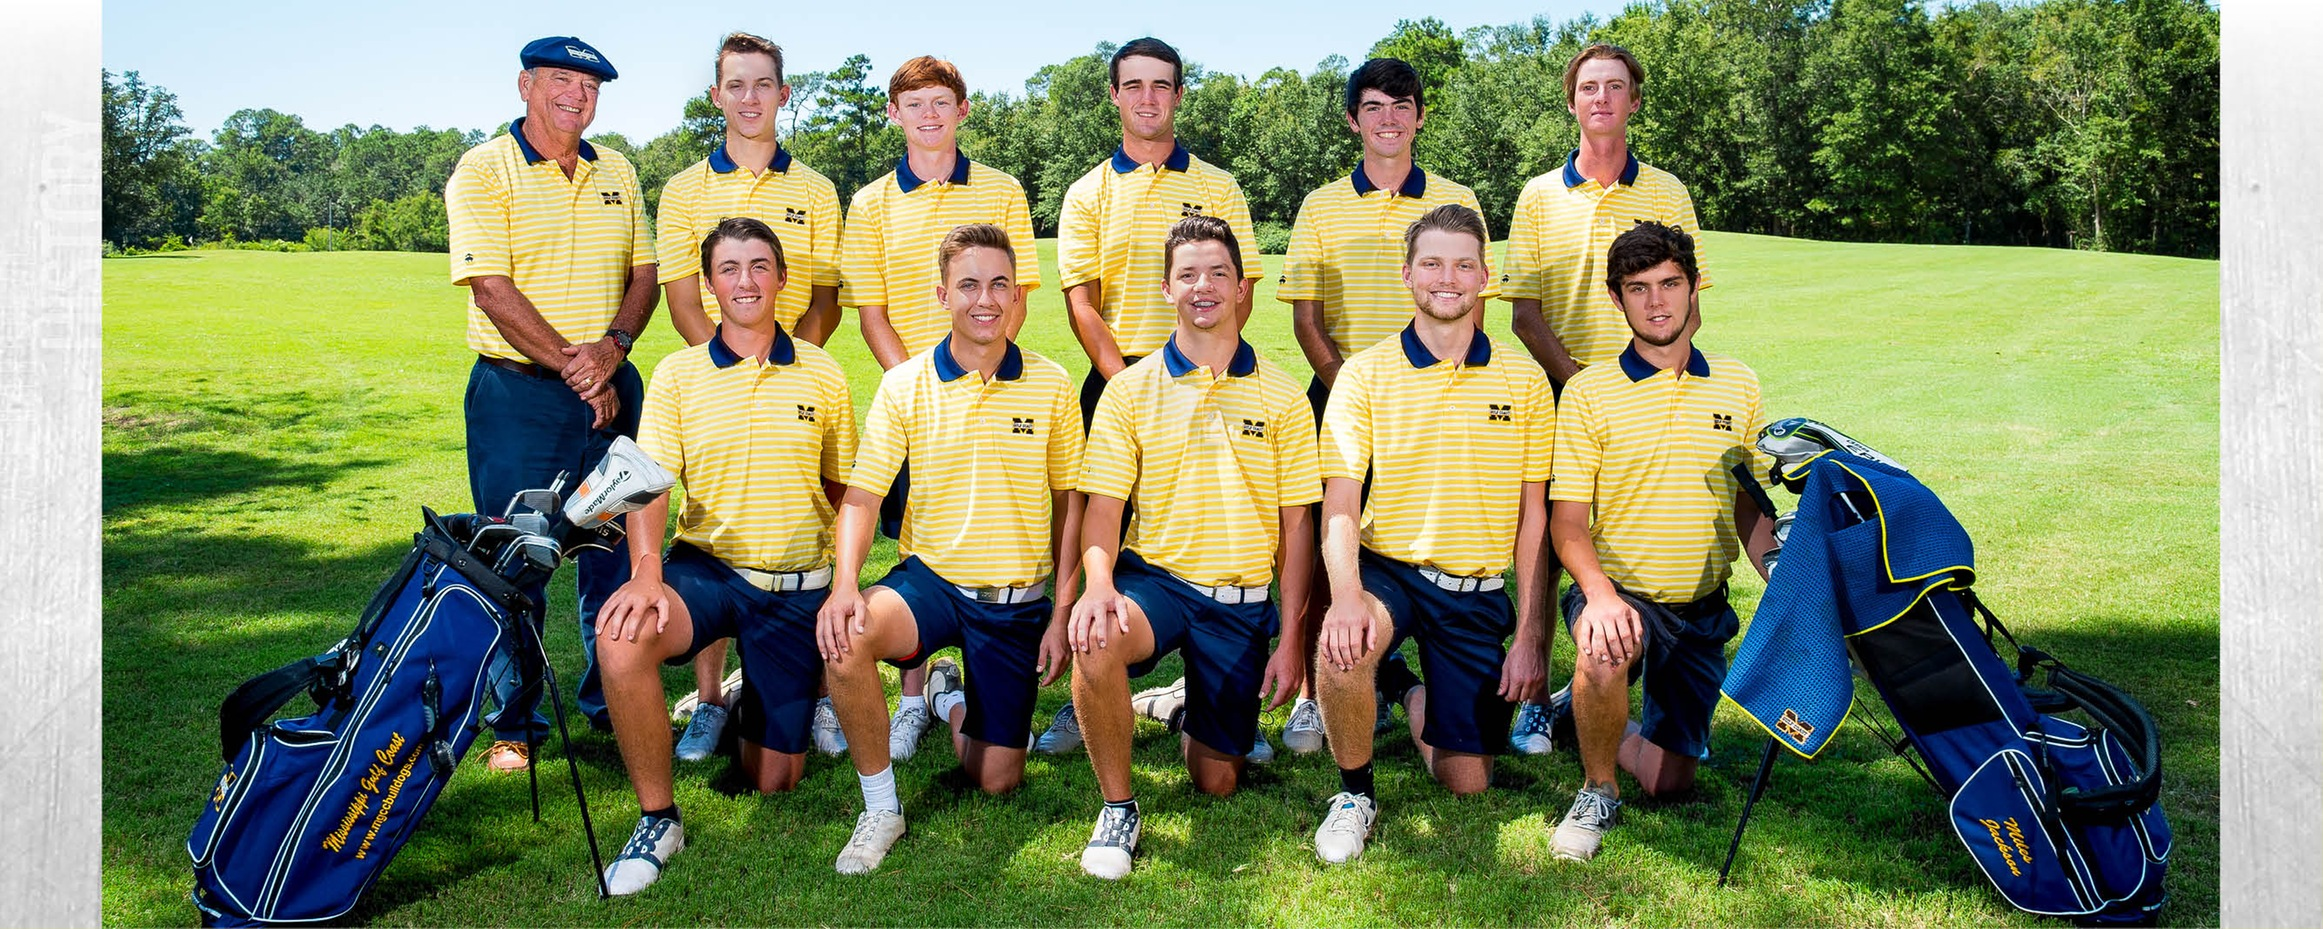 No. 1 MGCCC tees it up